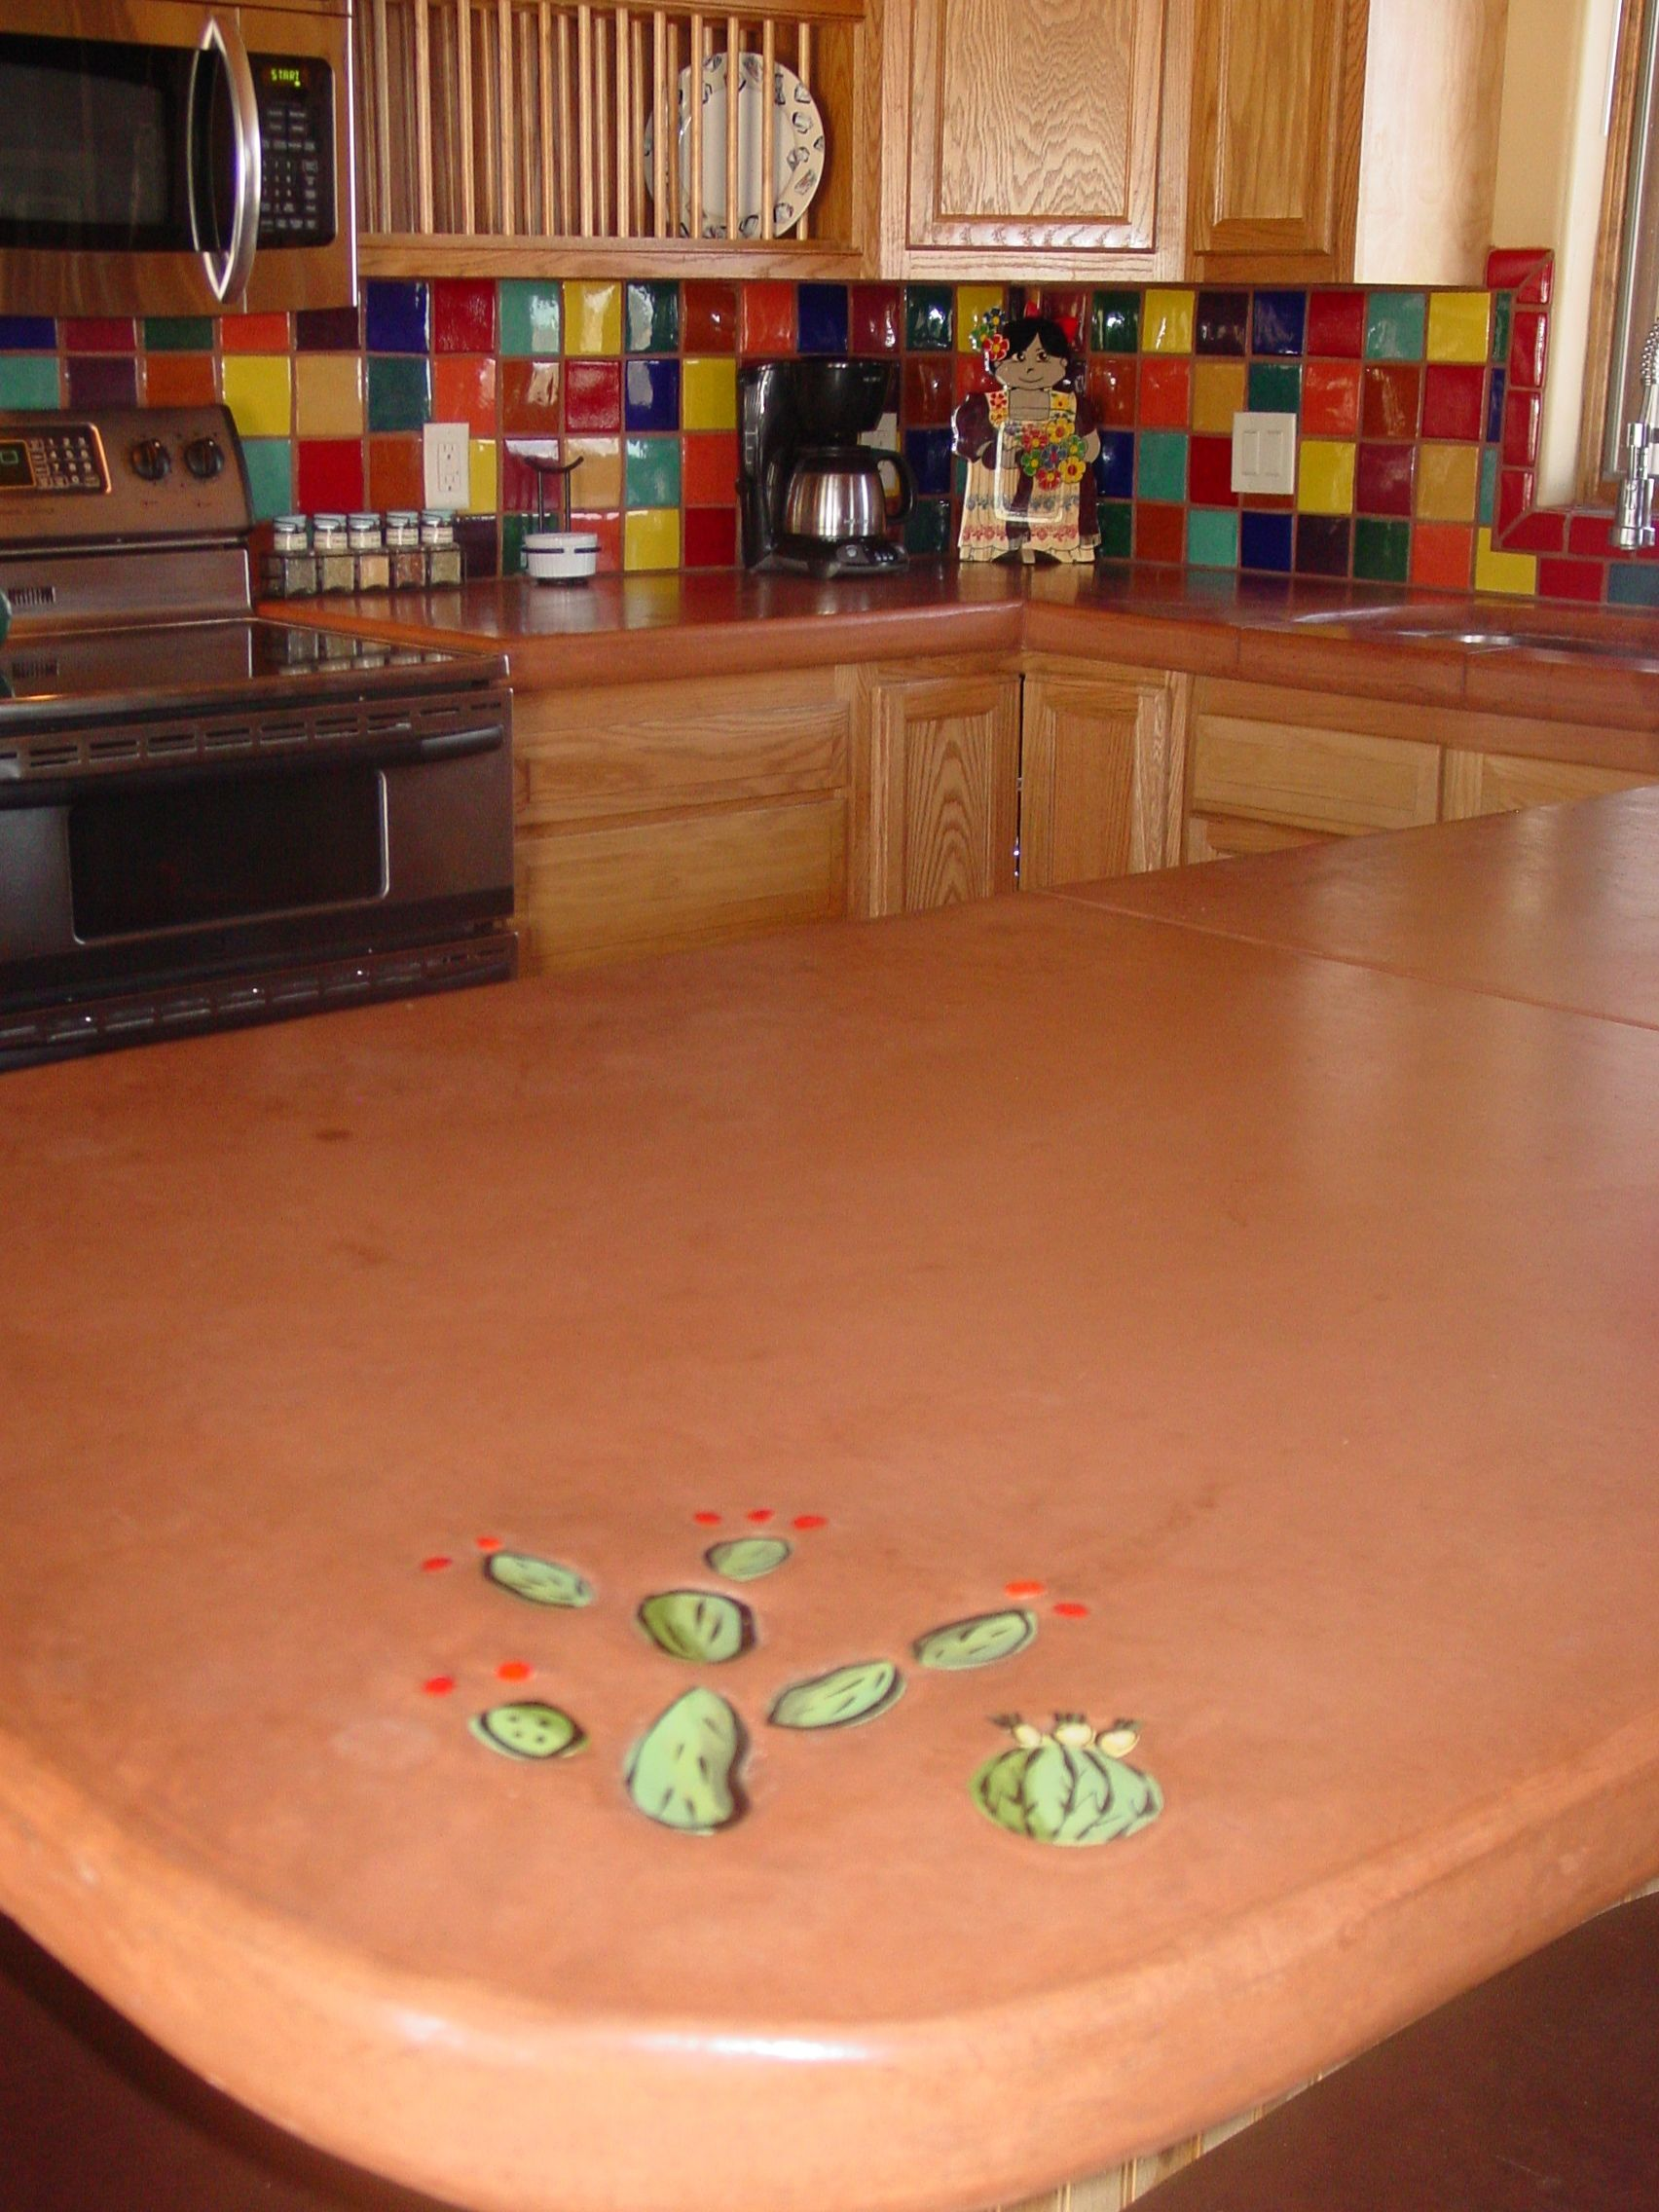 Concrete Counter Tops With Tile Inlay Backspalsh Is Mexican Tile Concrete Countertops Kitchen Diy Concrete Countertops Cheap Countertops